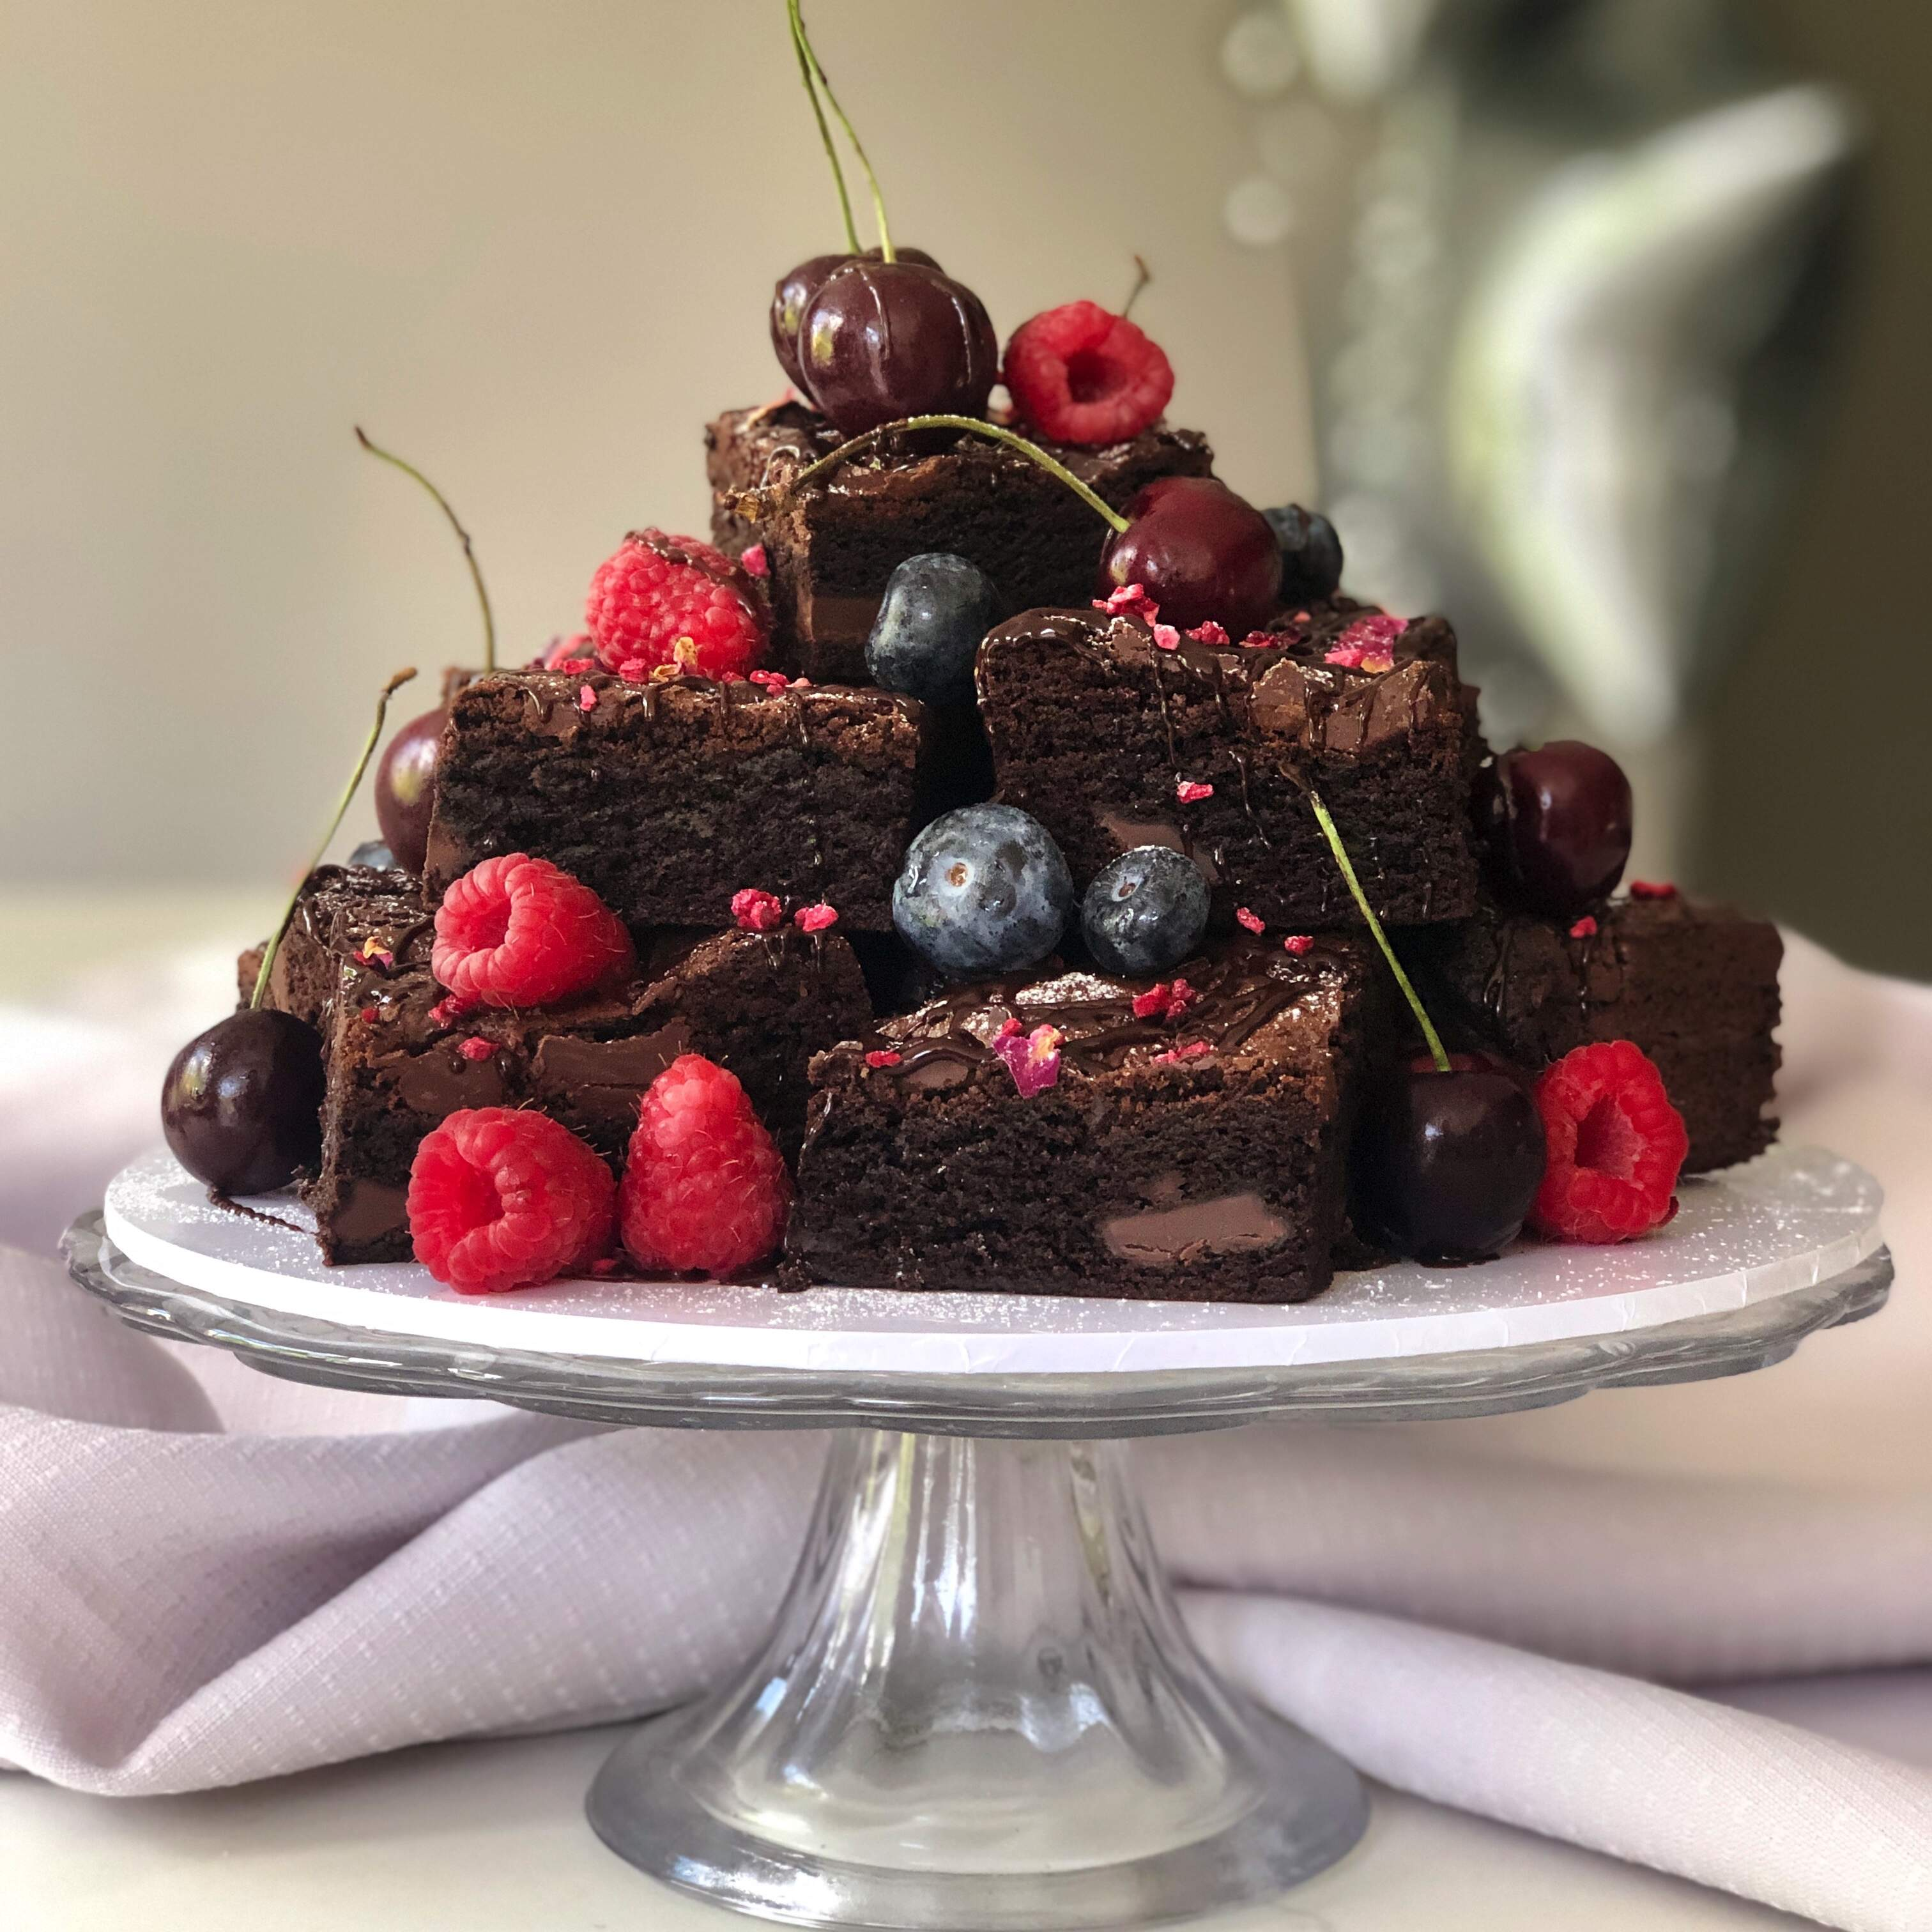 Karen Anna Brownie - topped with seasonal fruits